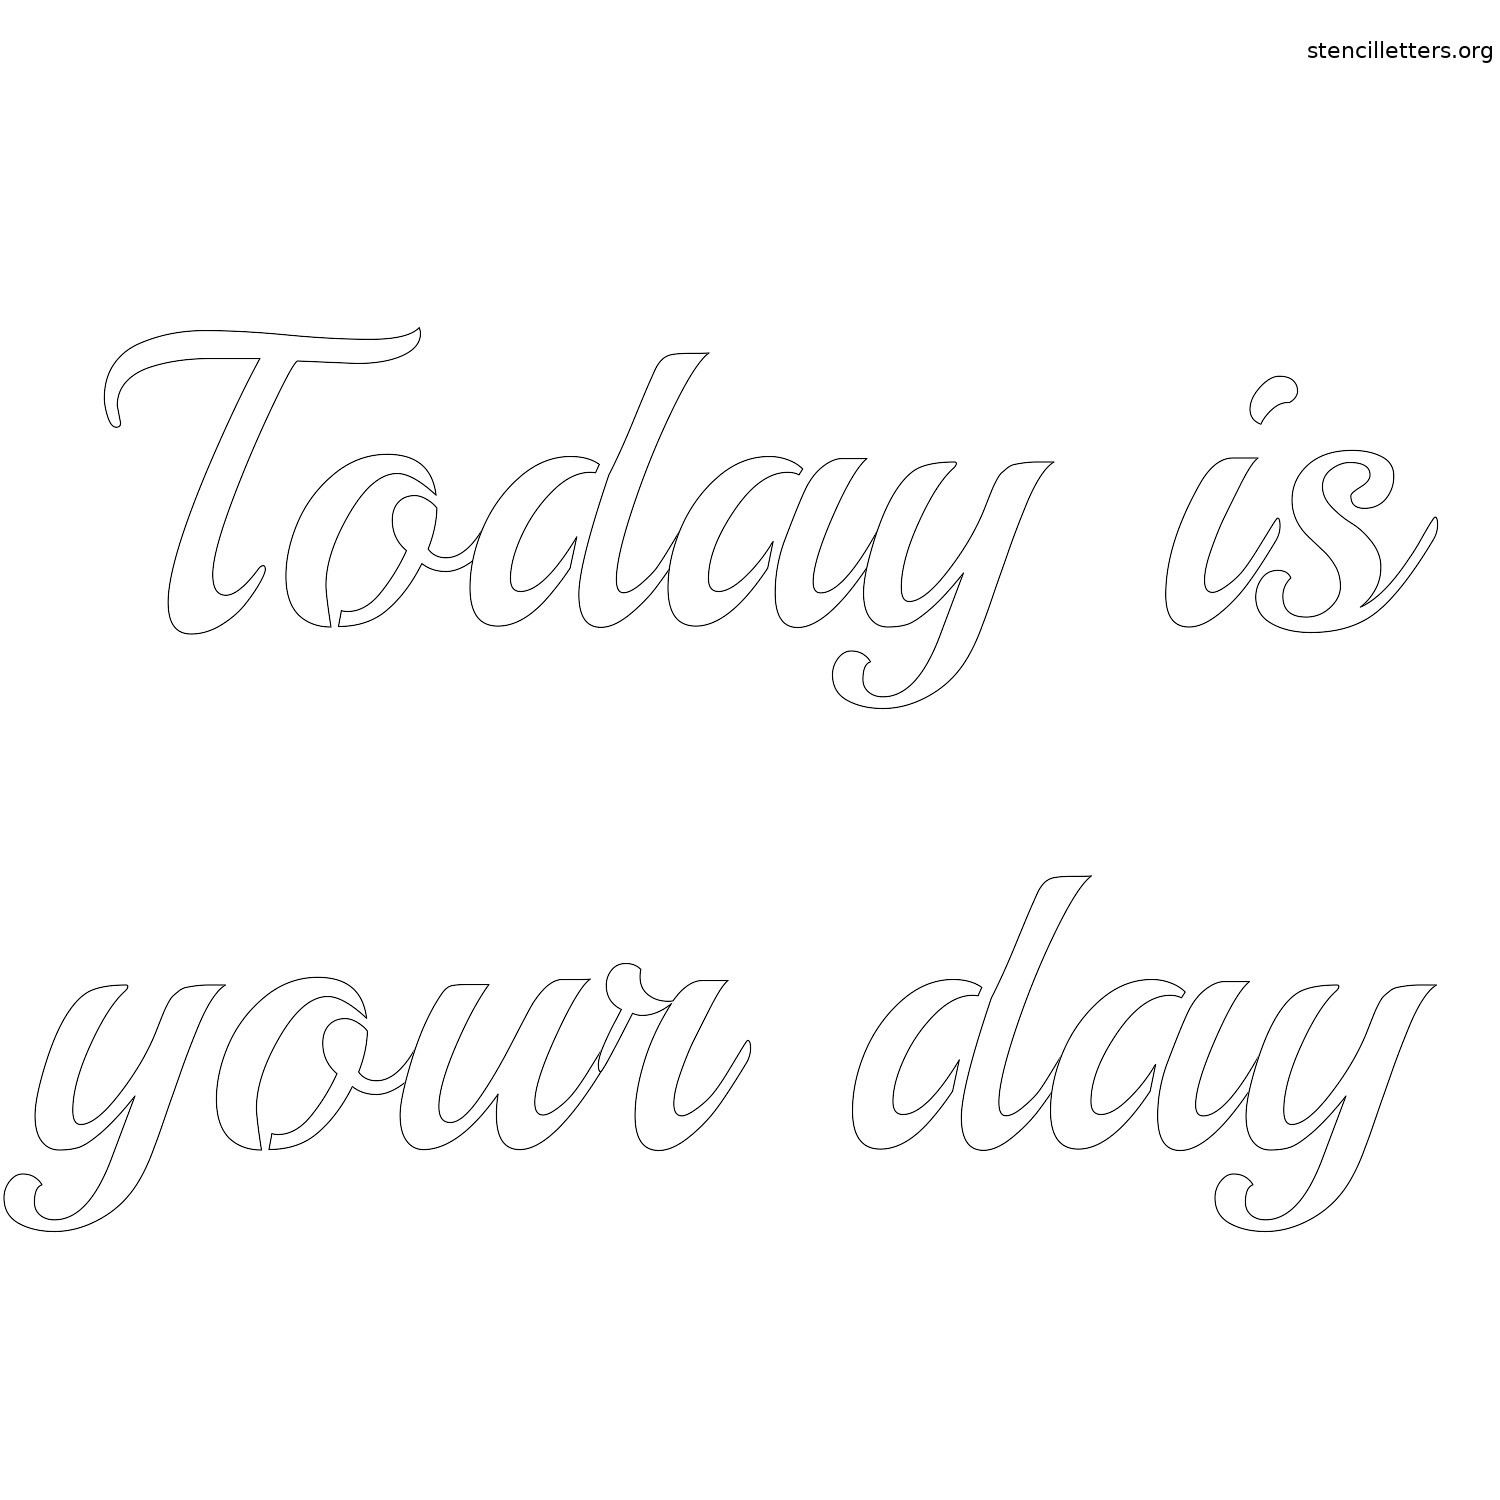 today-is-your-day-quote-stencil-outline.jpg